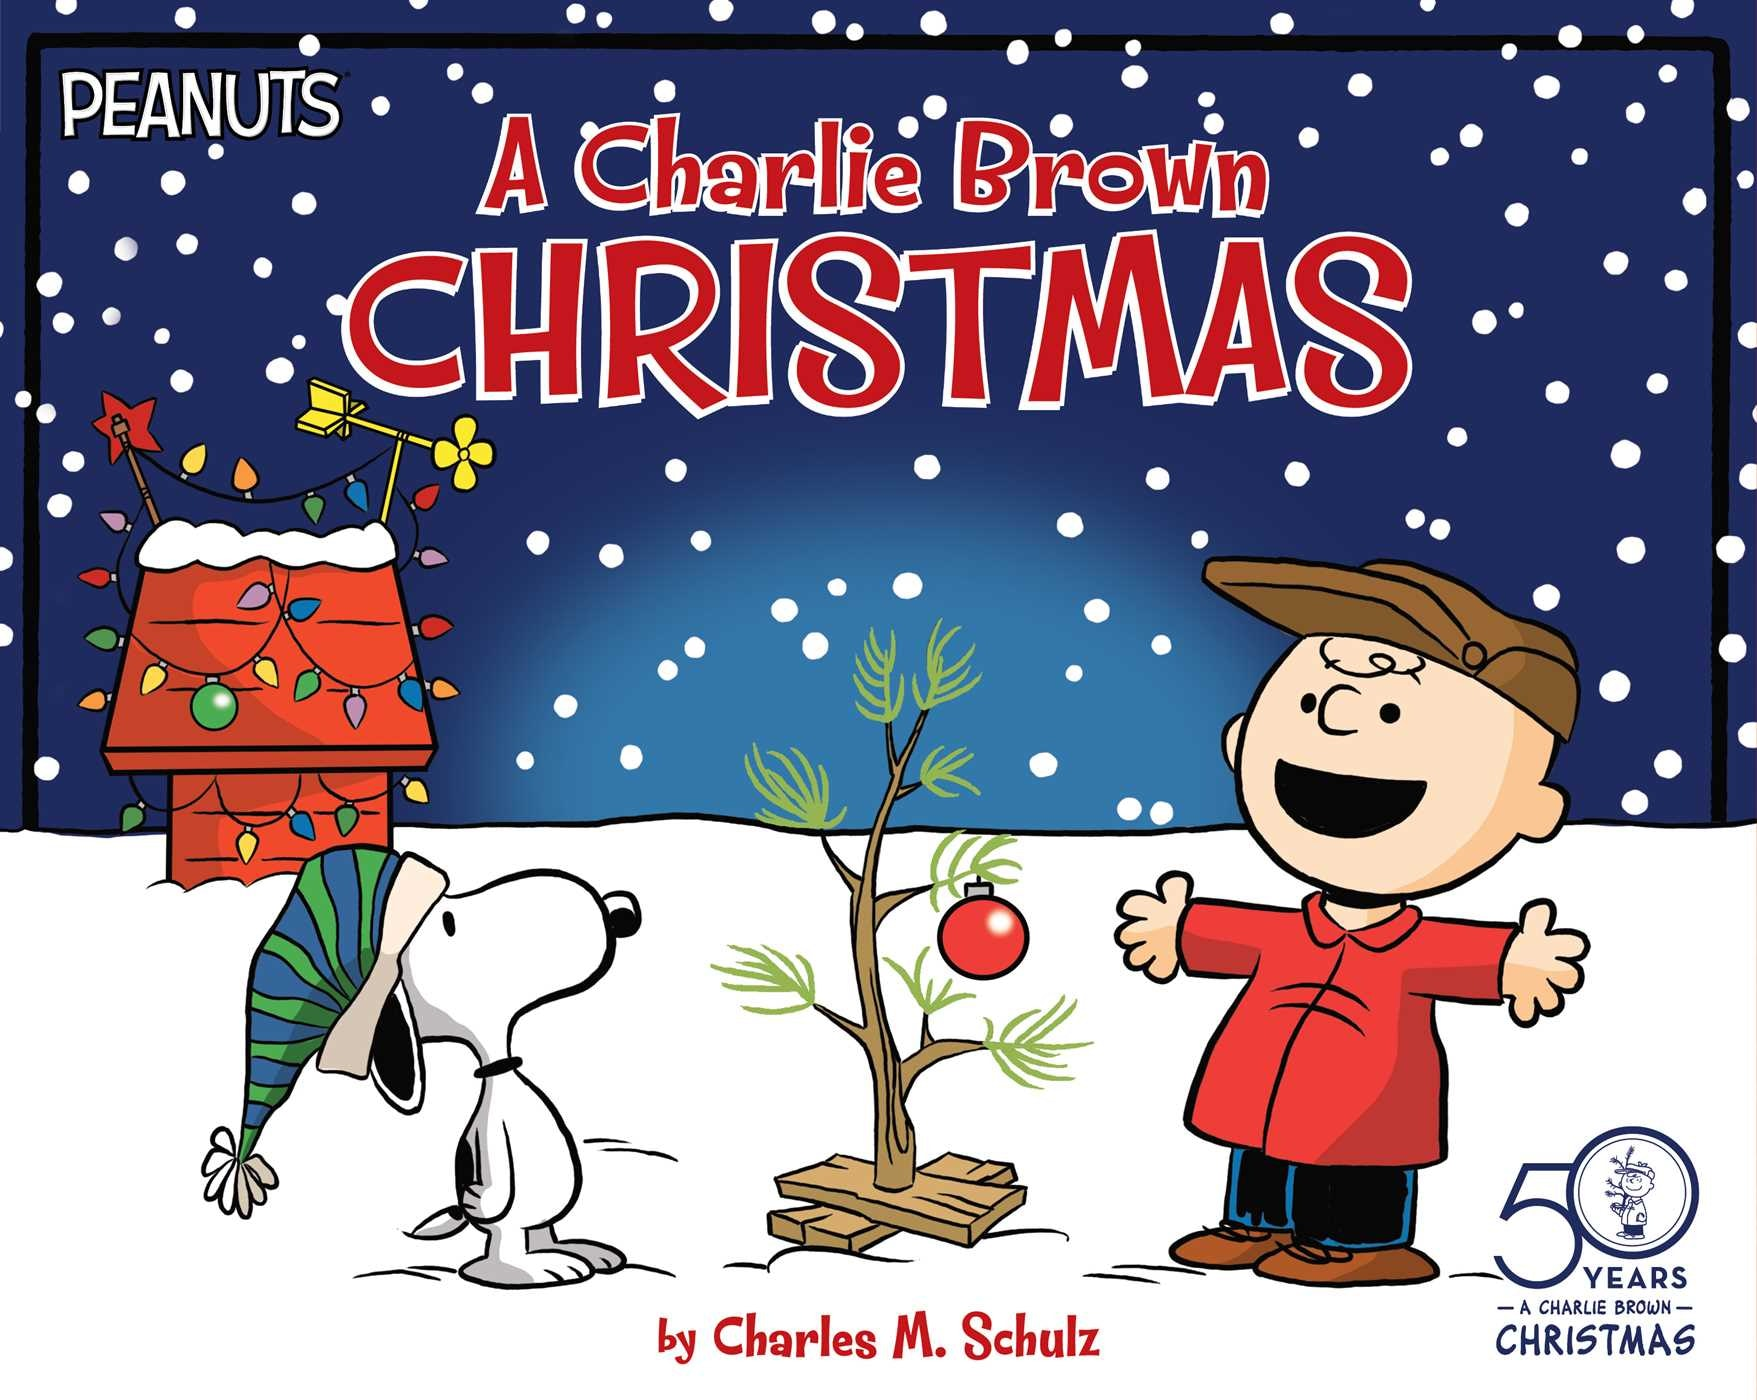 The Christmas Book You Need To Read This Season Based Your Myers